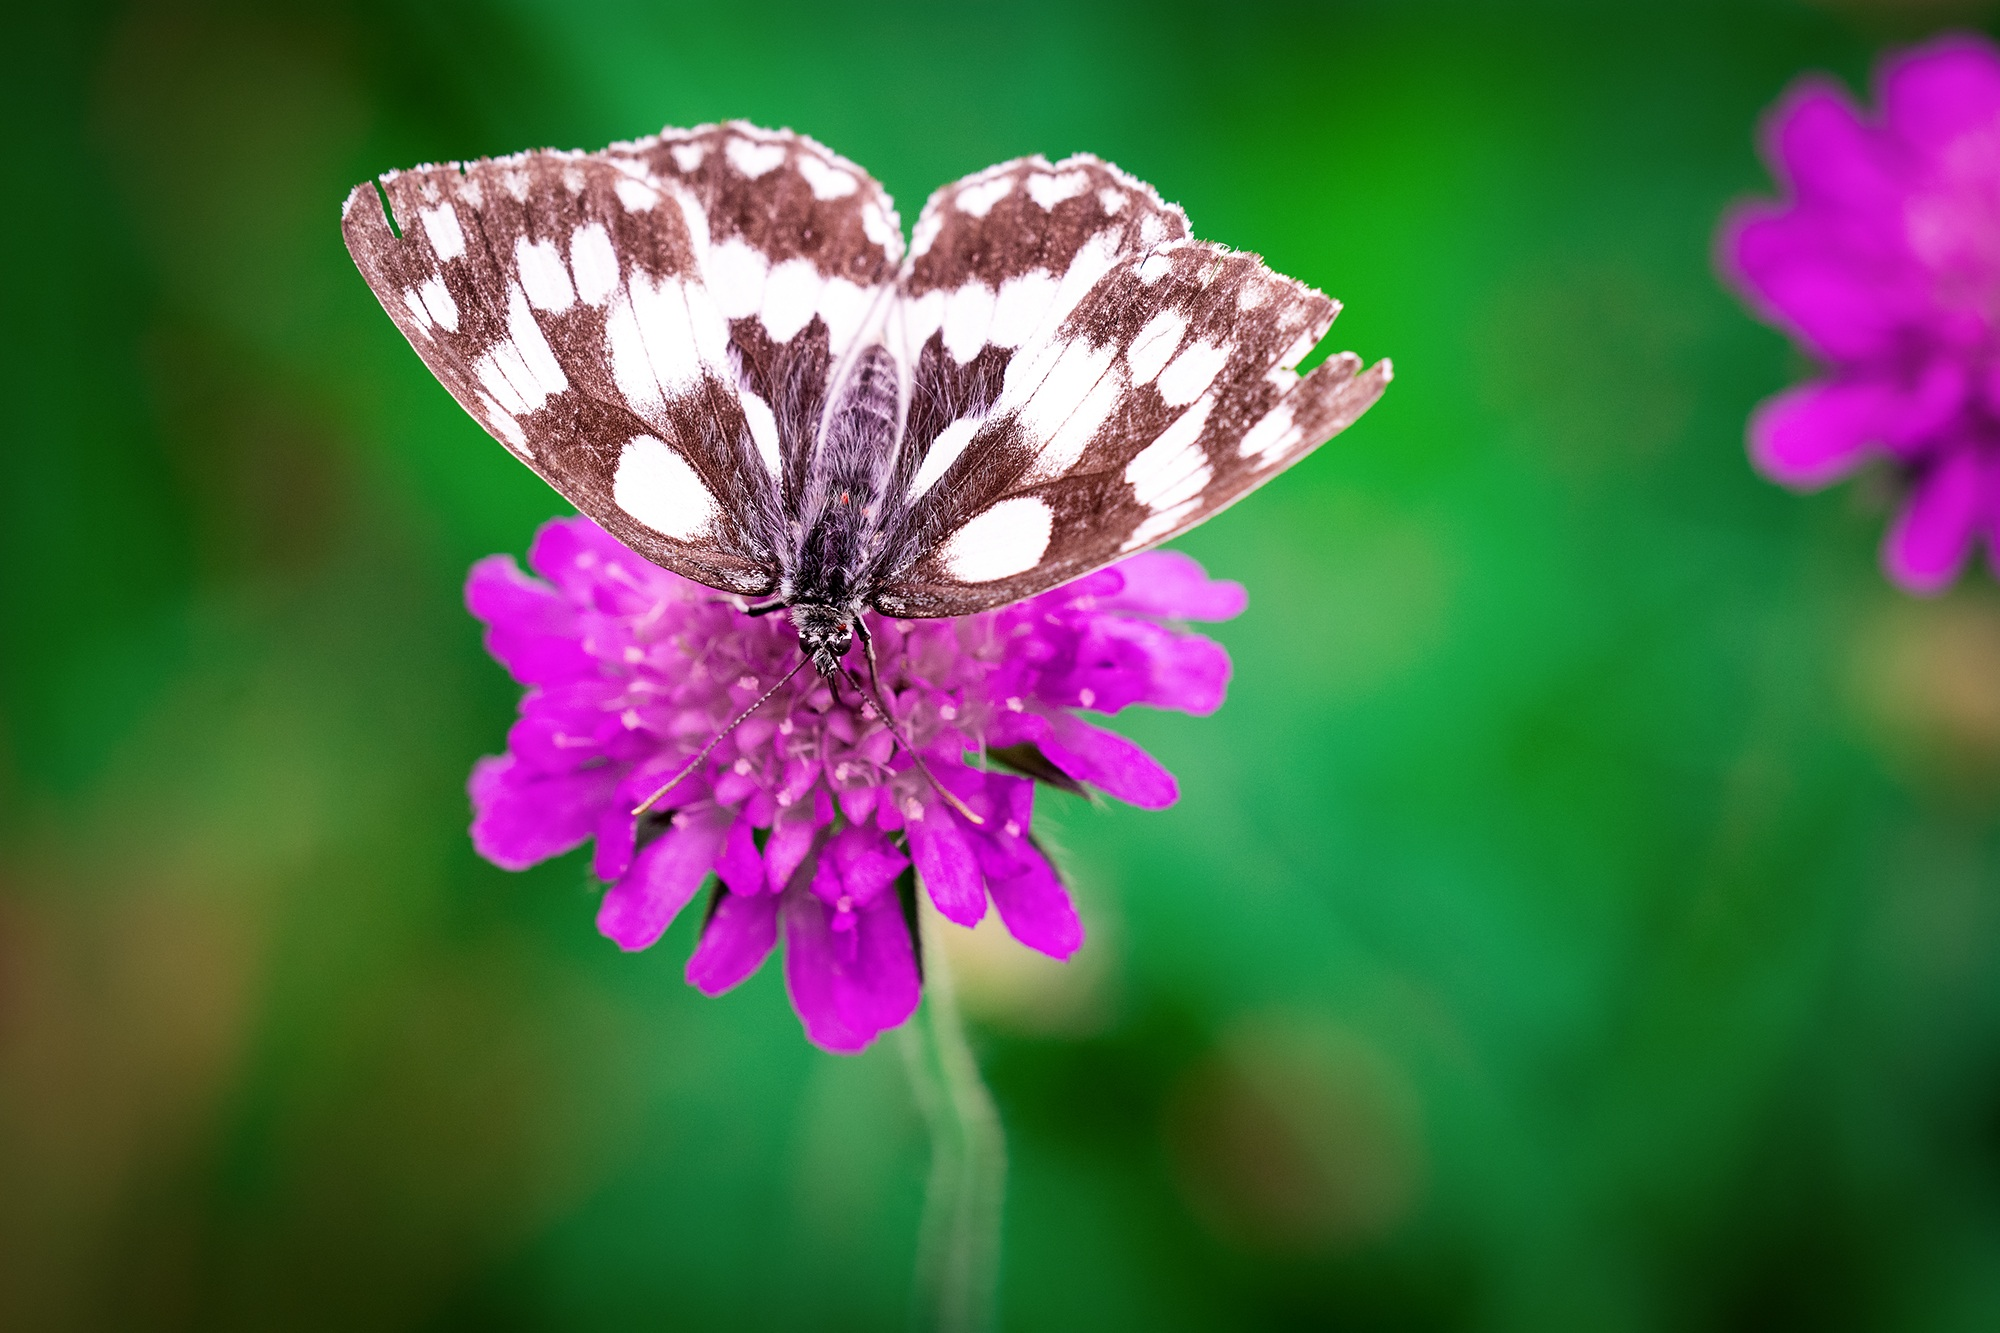 Pink Iphone X Wallpaper White Brown Butterfly Perched On Pink Flower 183 Free Stock